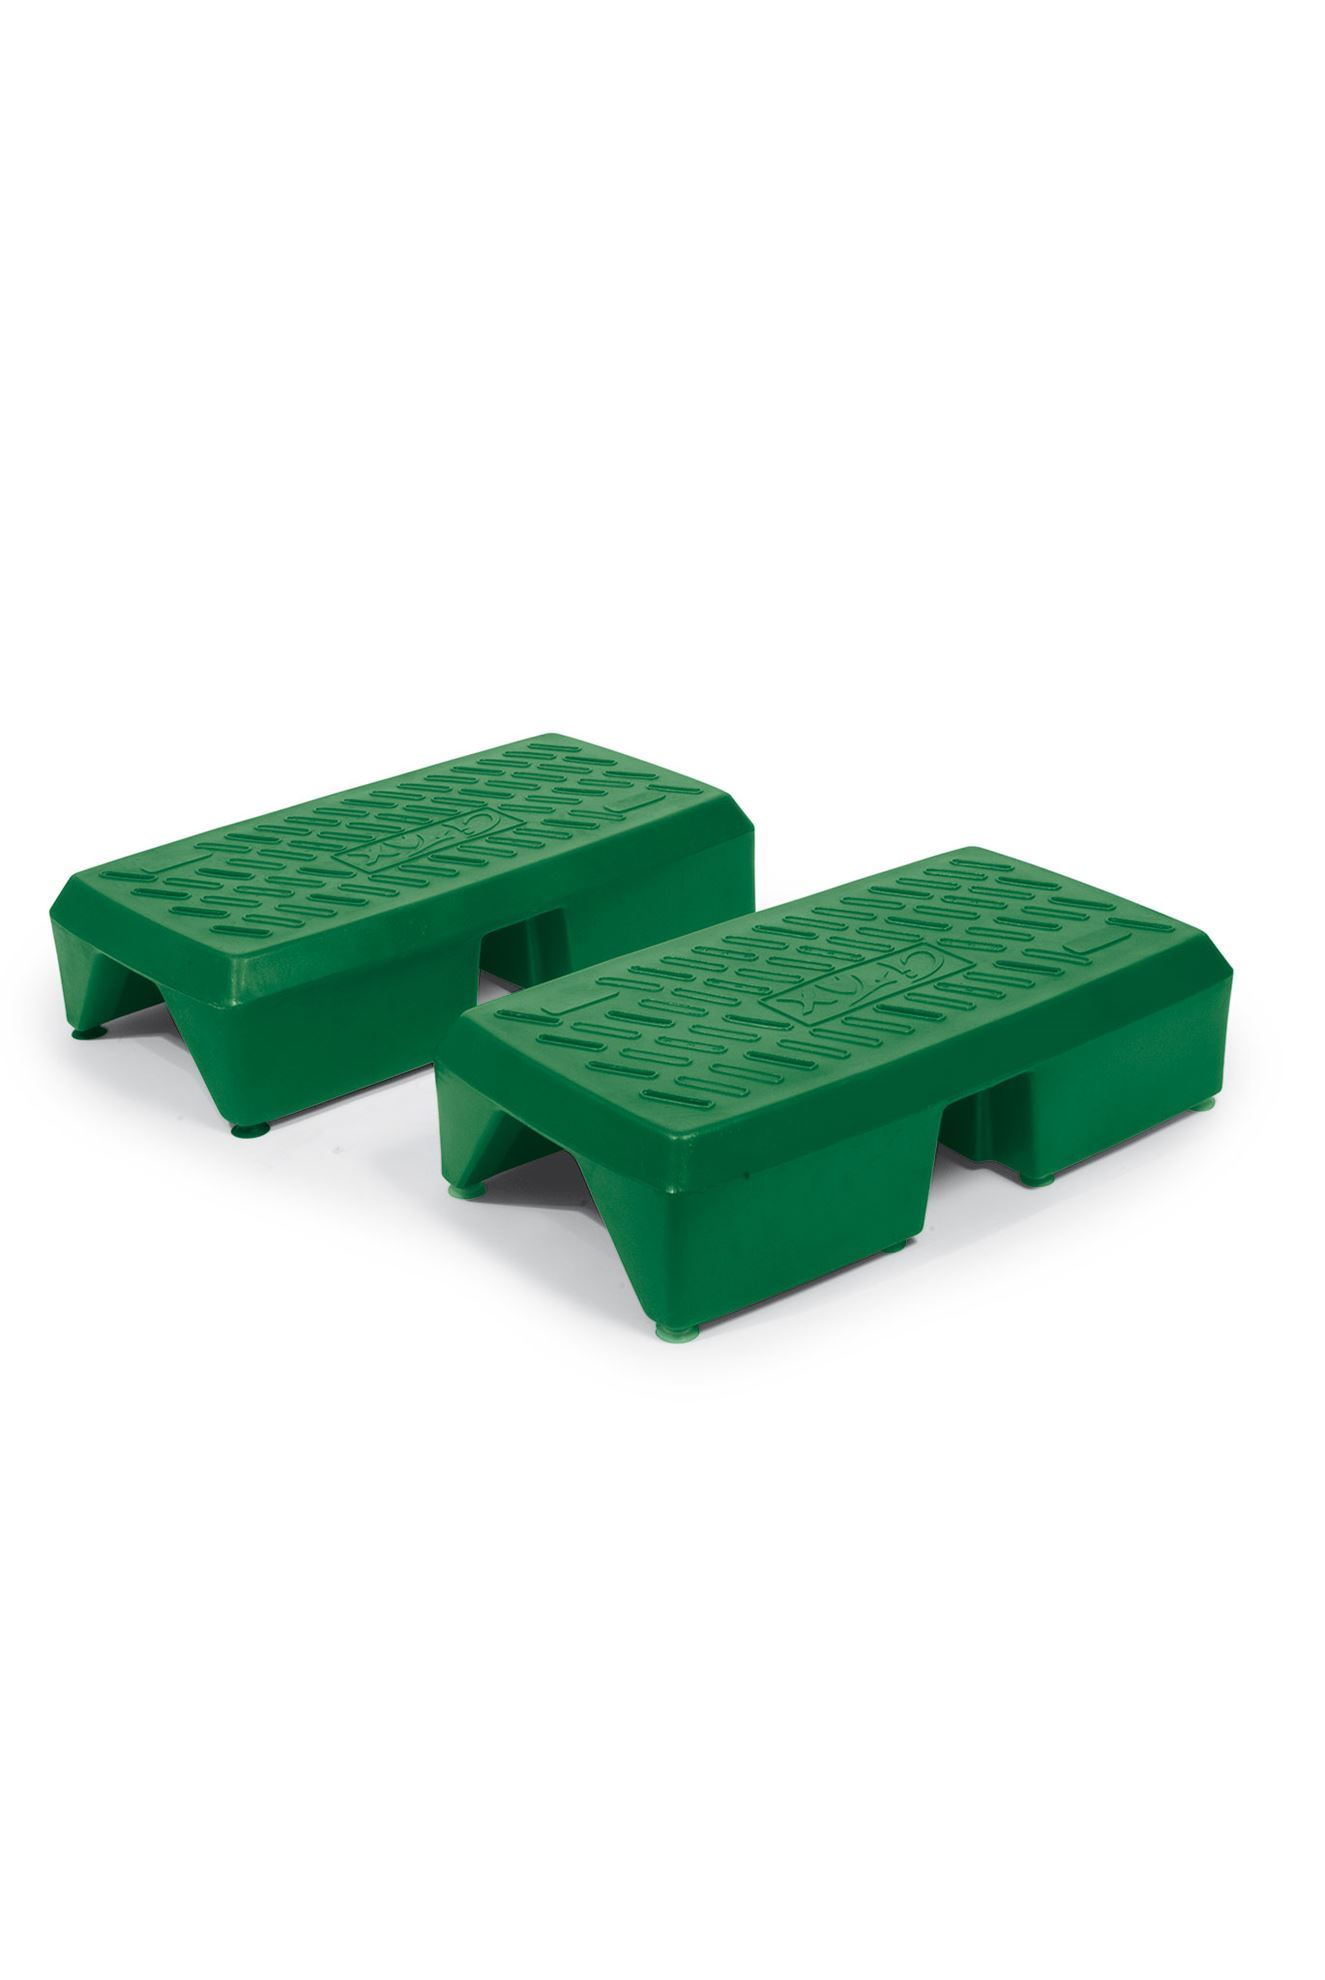 206016 - AQUA STEP BLACK SUCKERS GREEN/BLACK